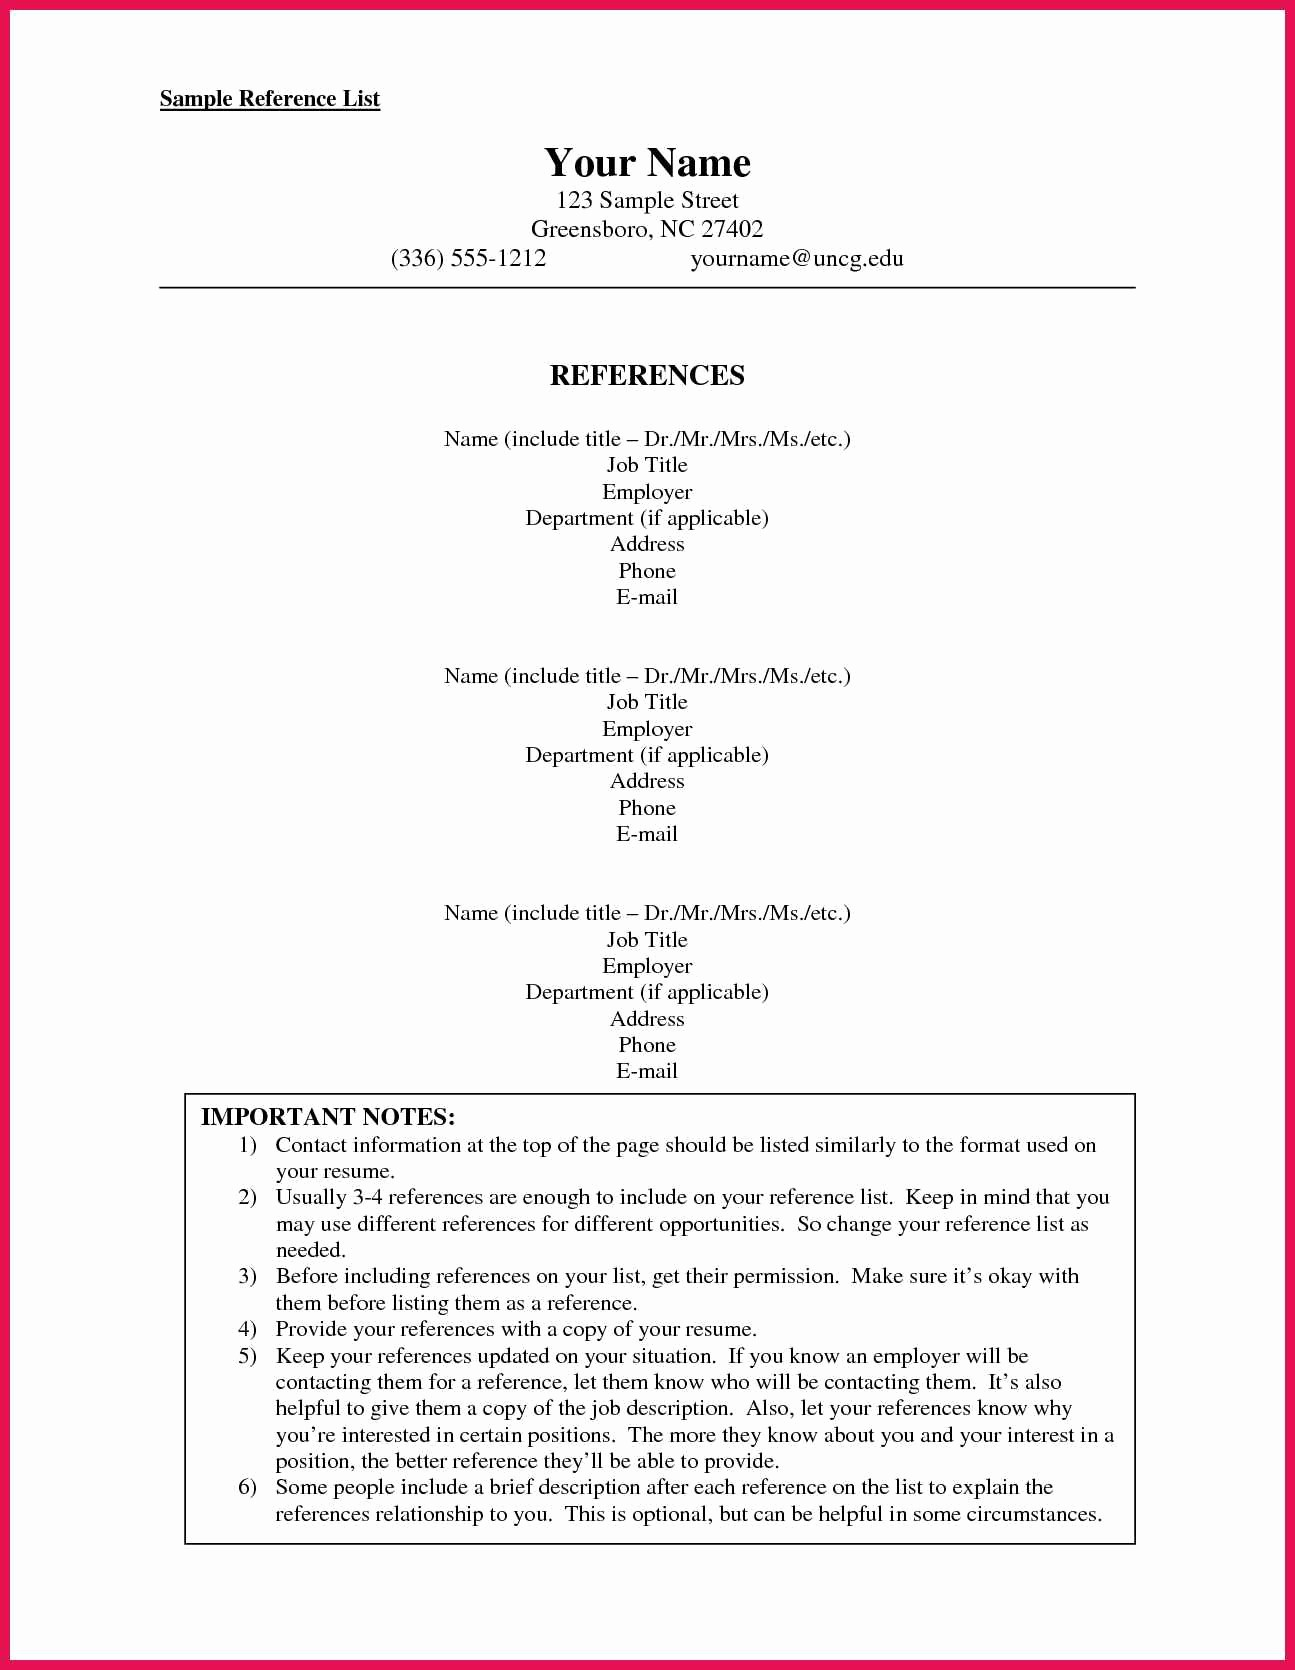 References Page format for Resume New How to format A Reference List